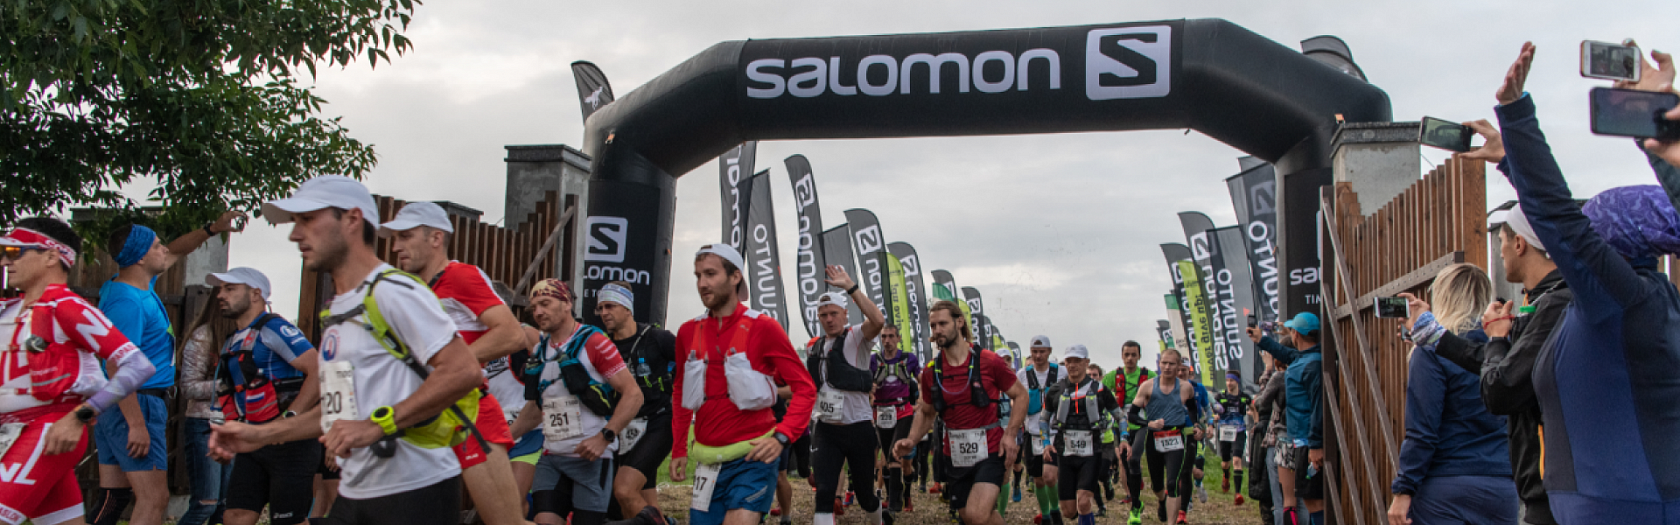 Salomon поддерживает RZD Golden Ring Ultra Trail 100